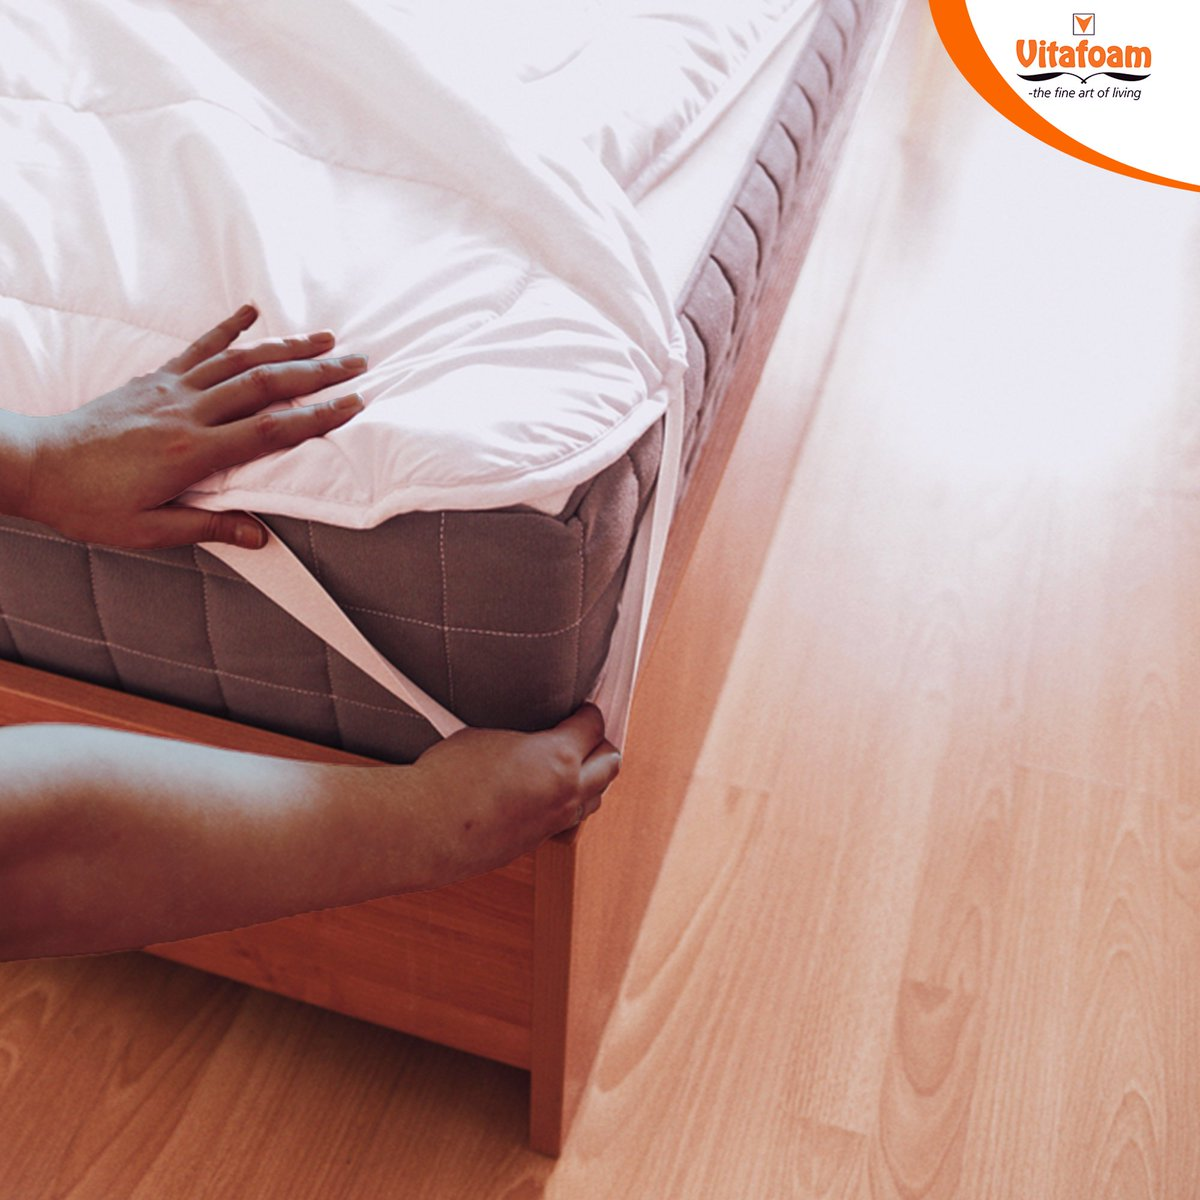 Vitafoam Nigeria Plc On Twitter Mattress Protectors Keep Your Mattress Clean Prevents Stains Keeps Off Dust Mites And Helps To Look New For A Longer Period Do You Use A Mattress Protector